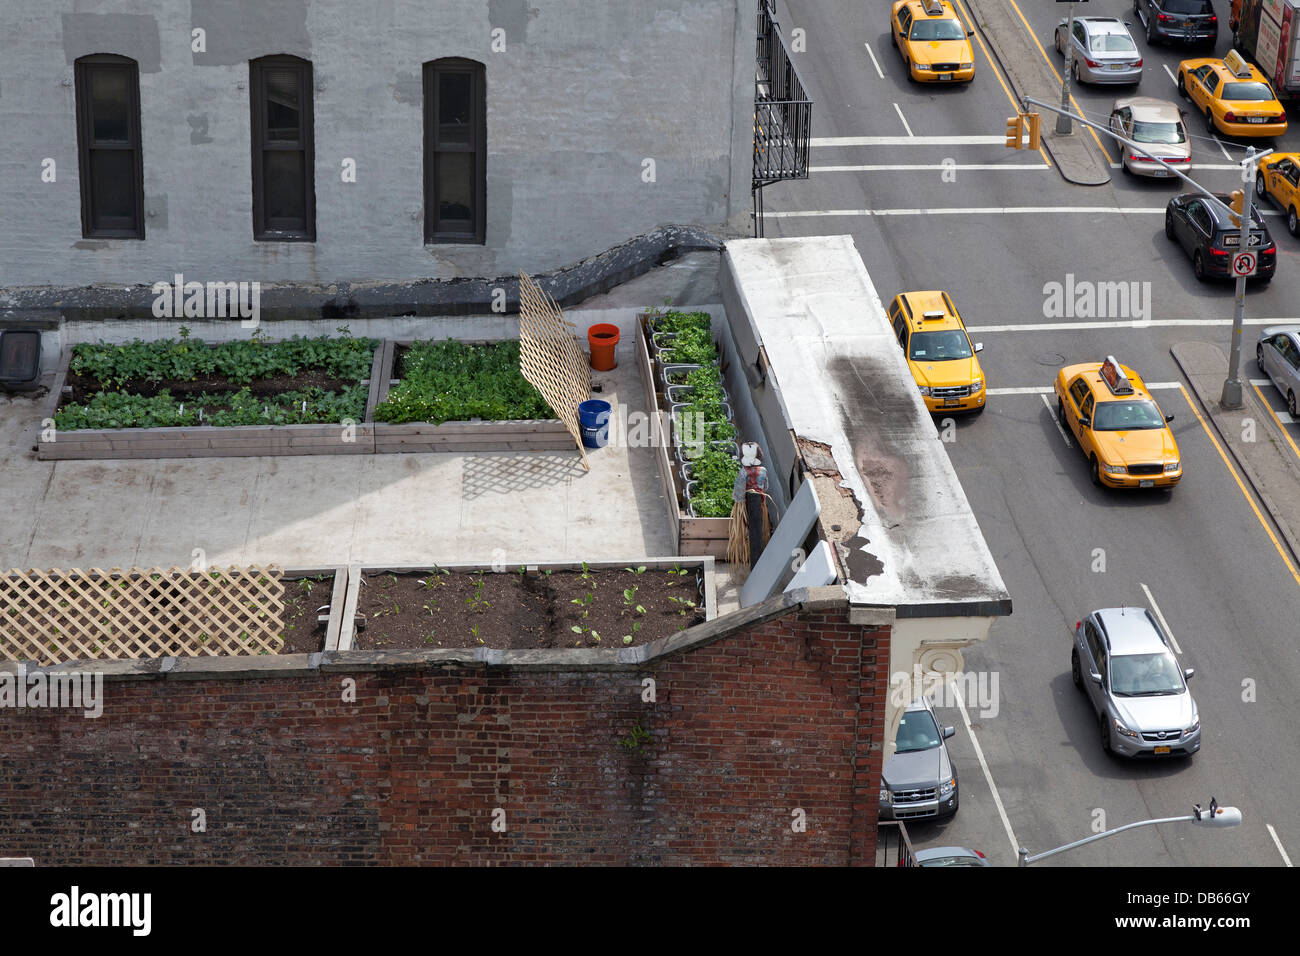 Vegetable garden on a rooftop in New York City - Stock Image